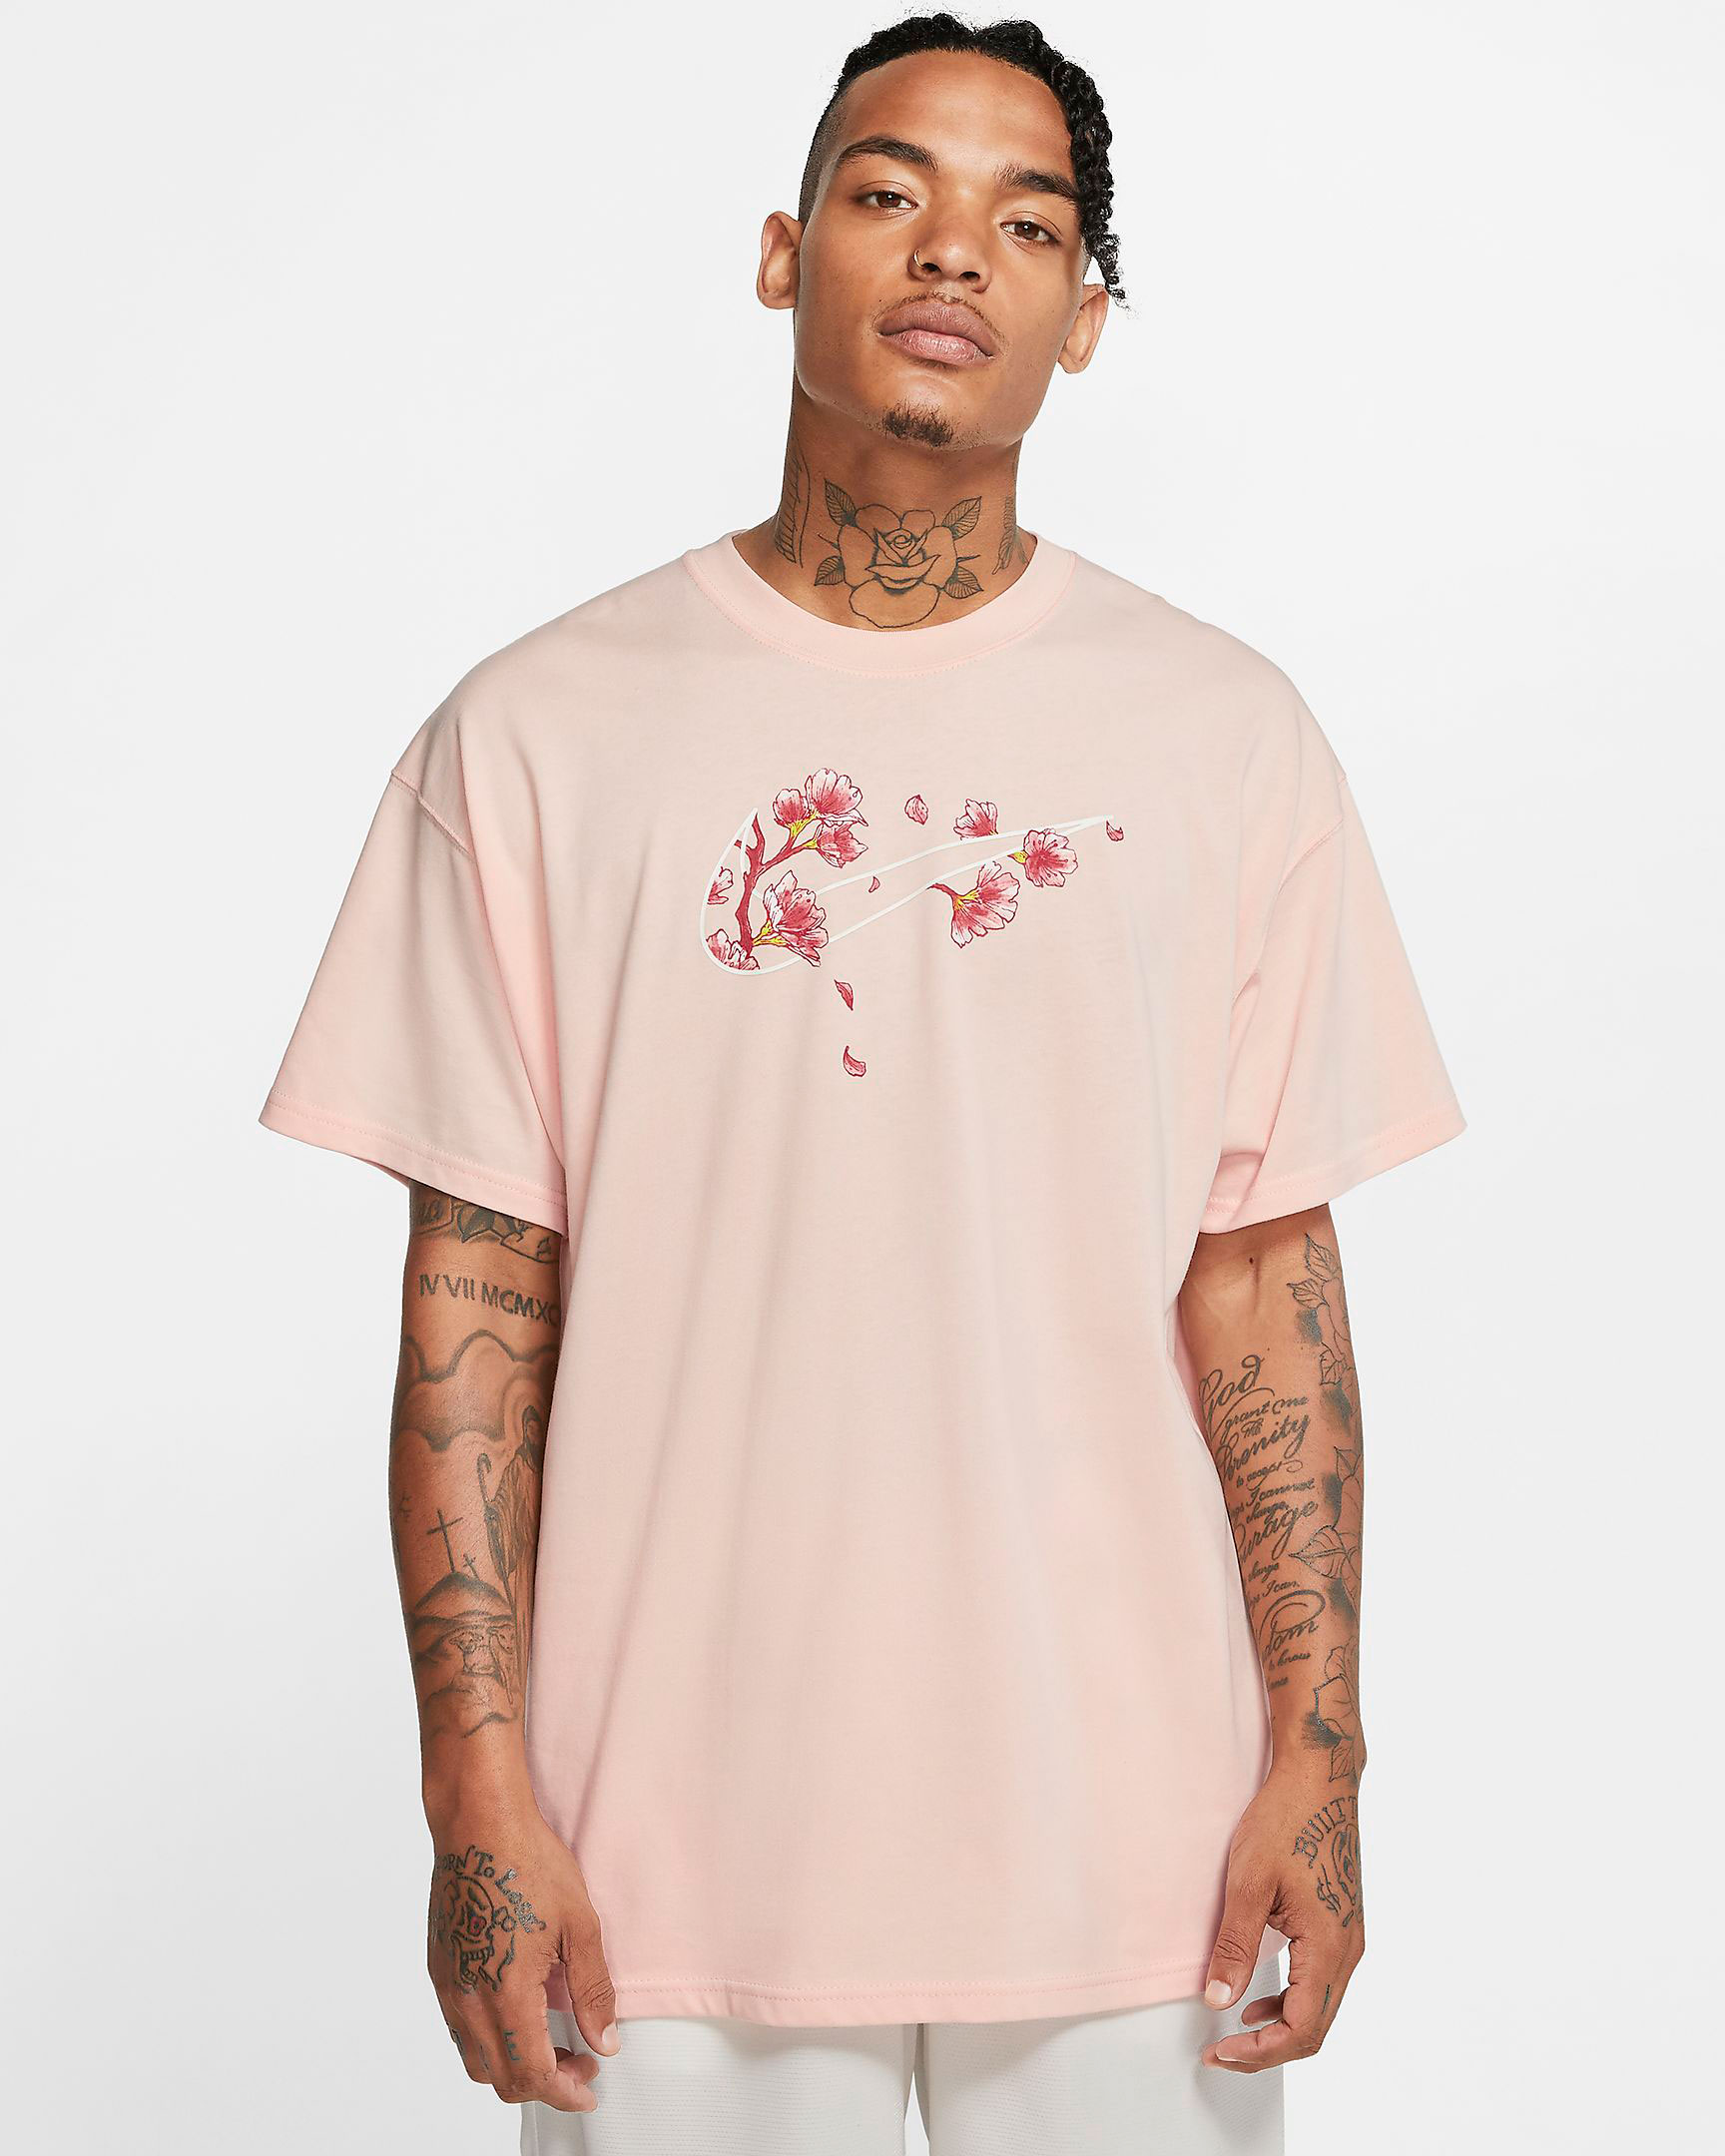 nike-cherry-blossoms-shirt-2